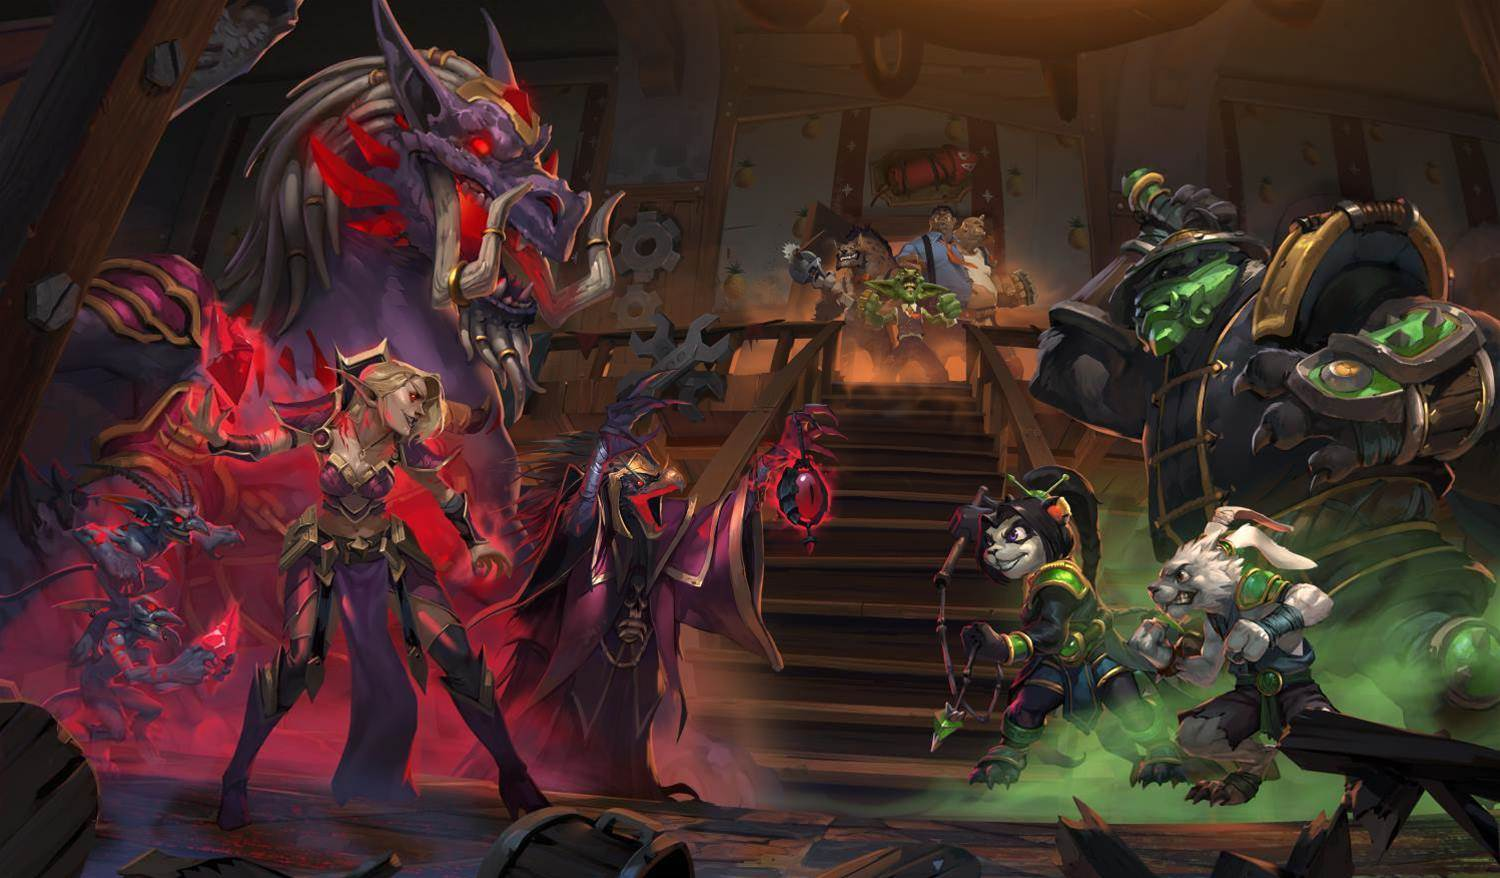 Mean Streets of Gadgetzan expansion hits Heartstone